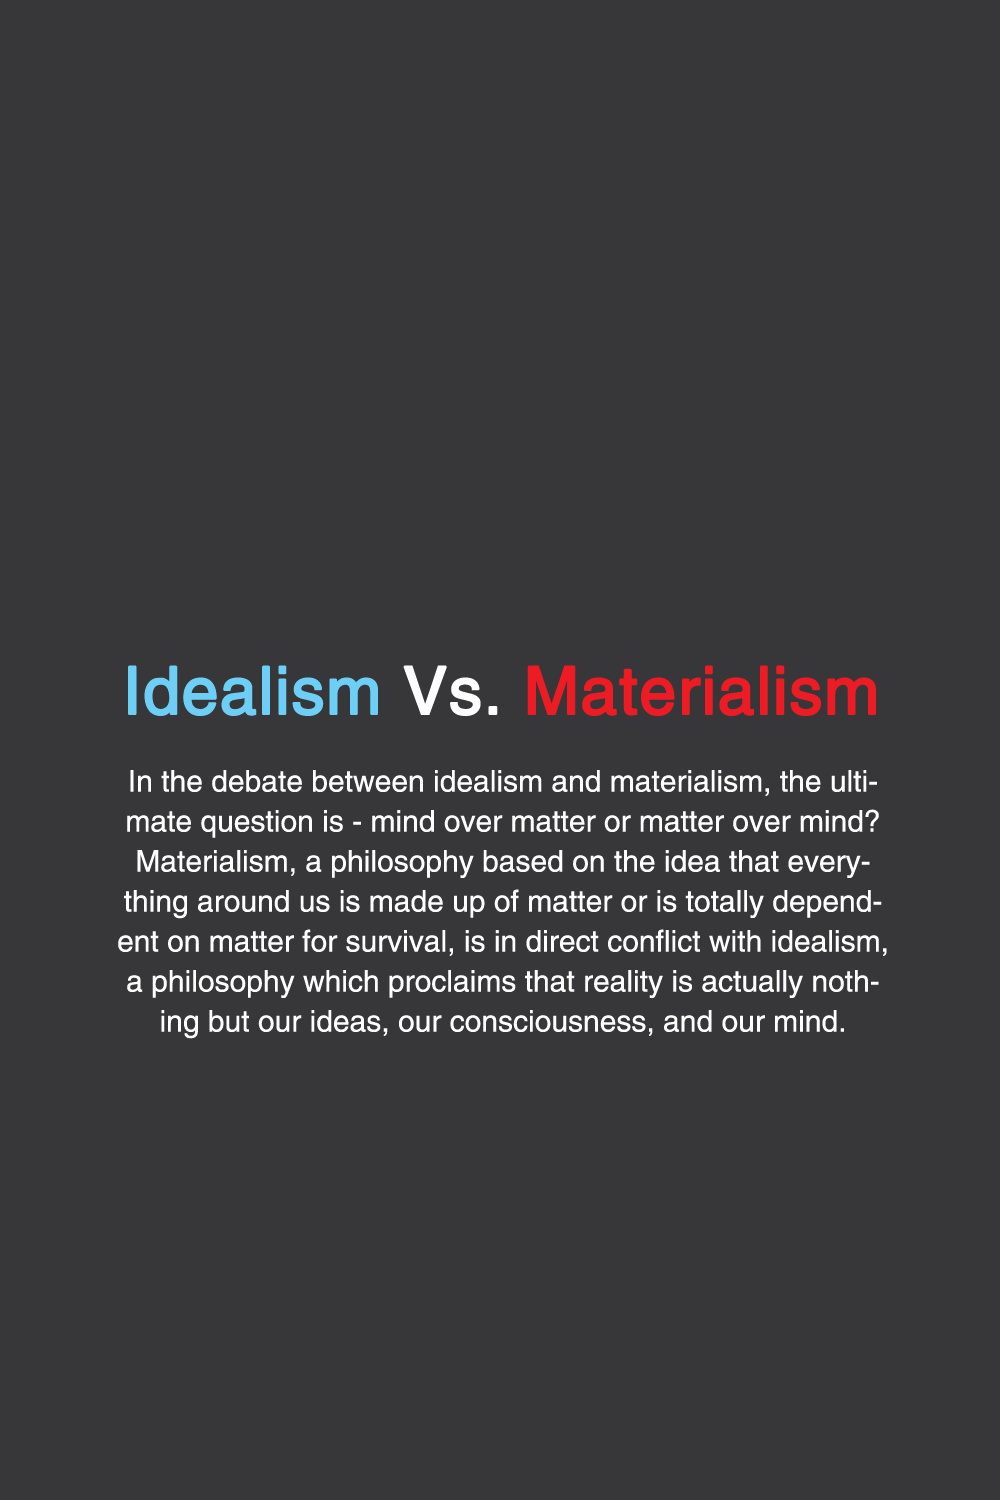 idealism vs materialism 1 3 philosophy typography materialism 1 3 philosophy typography typographyposter